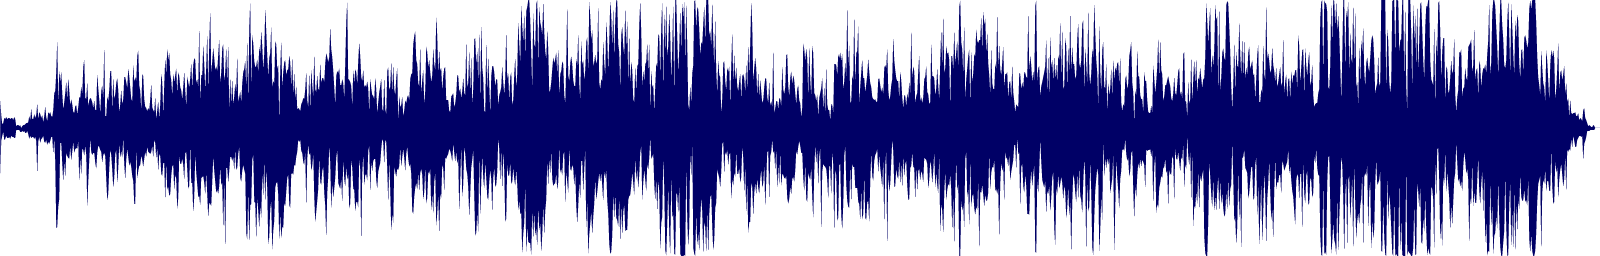 waveform of track #129454